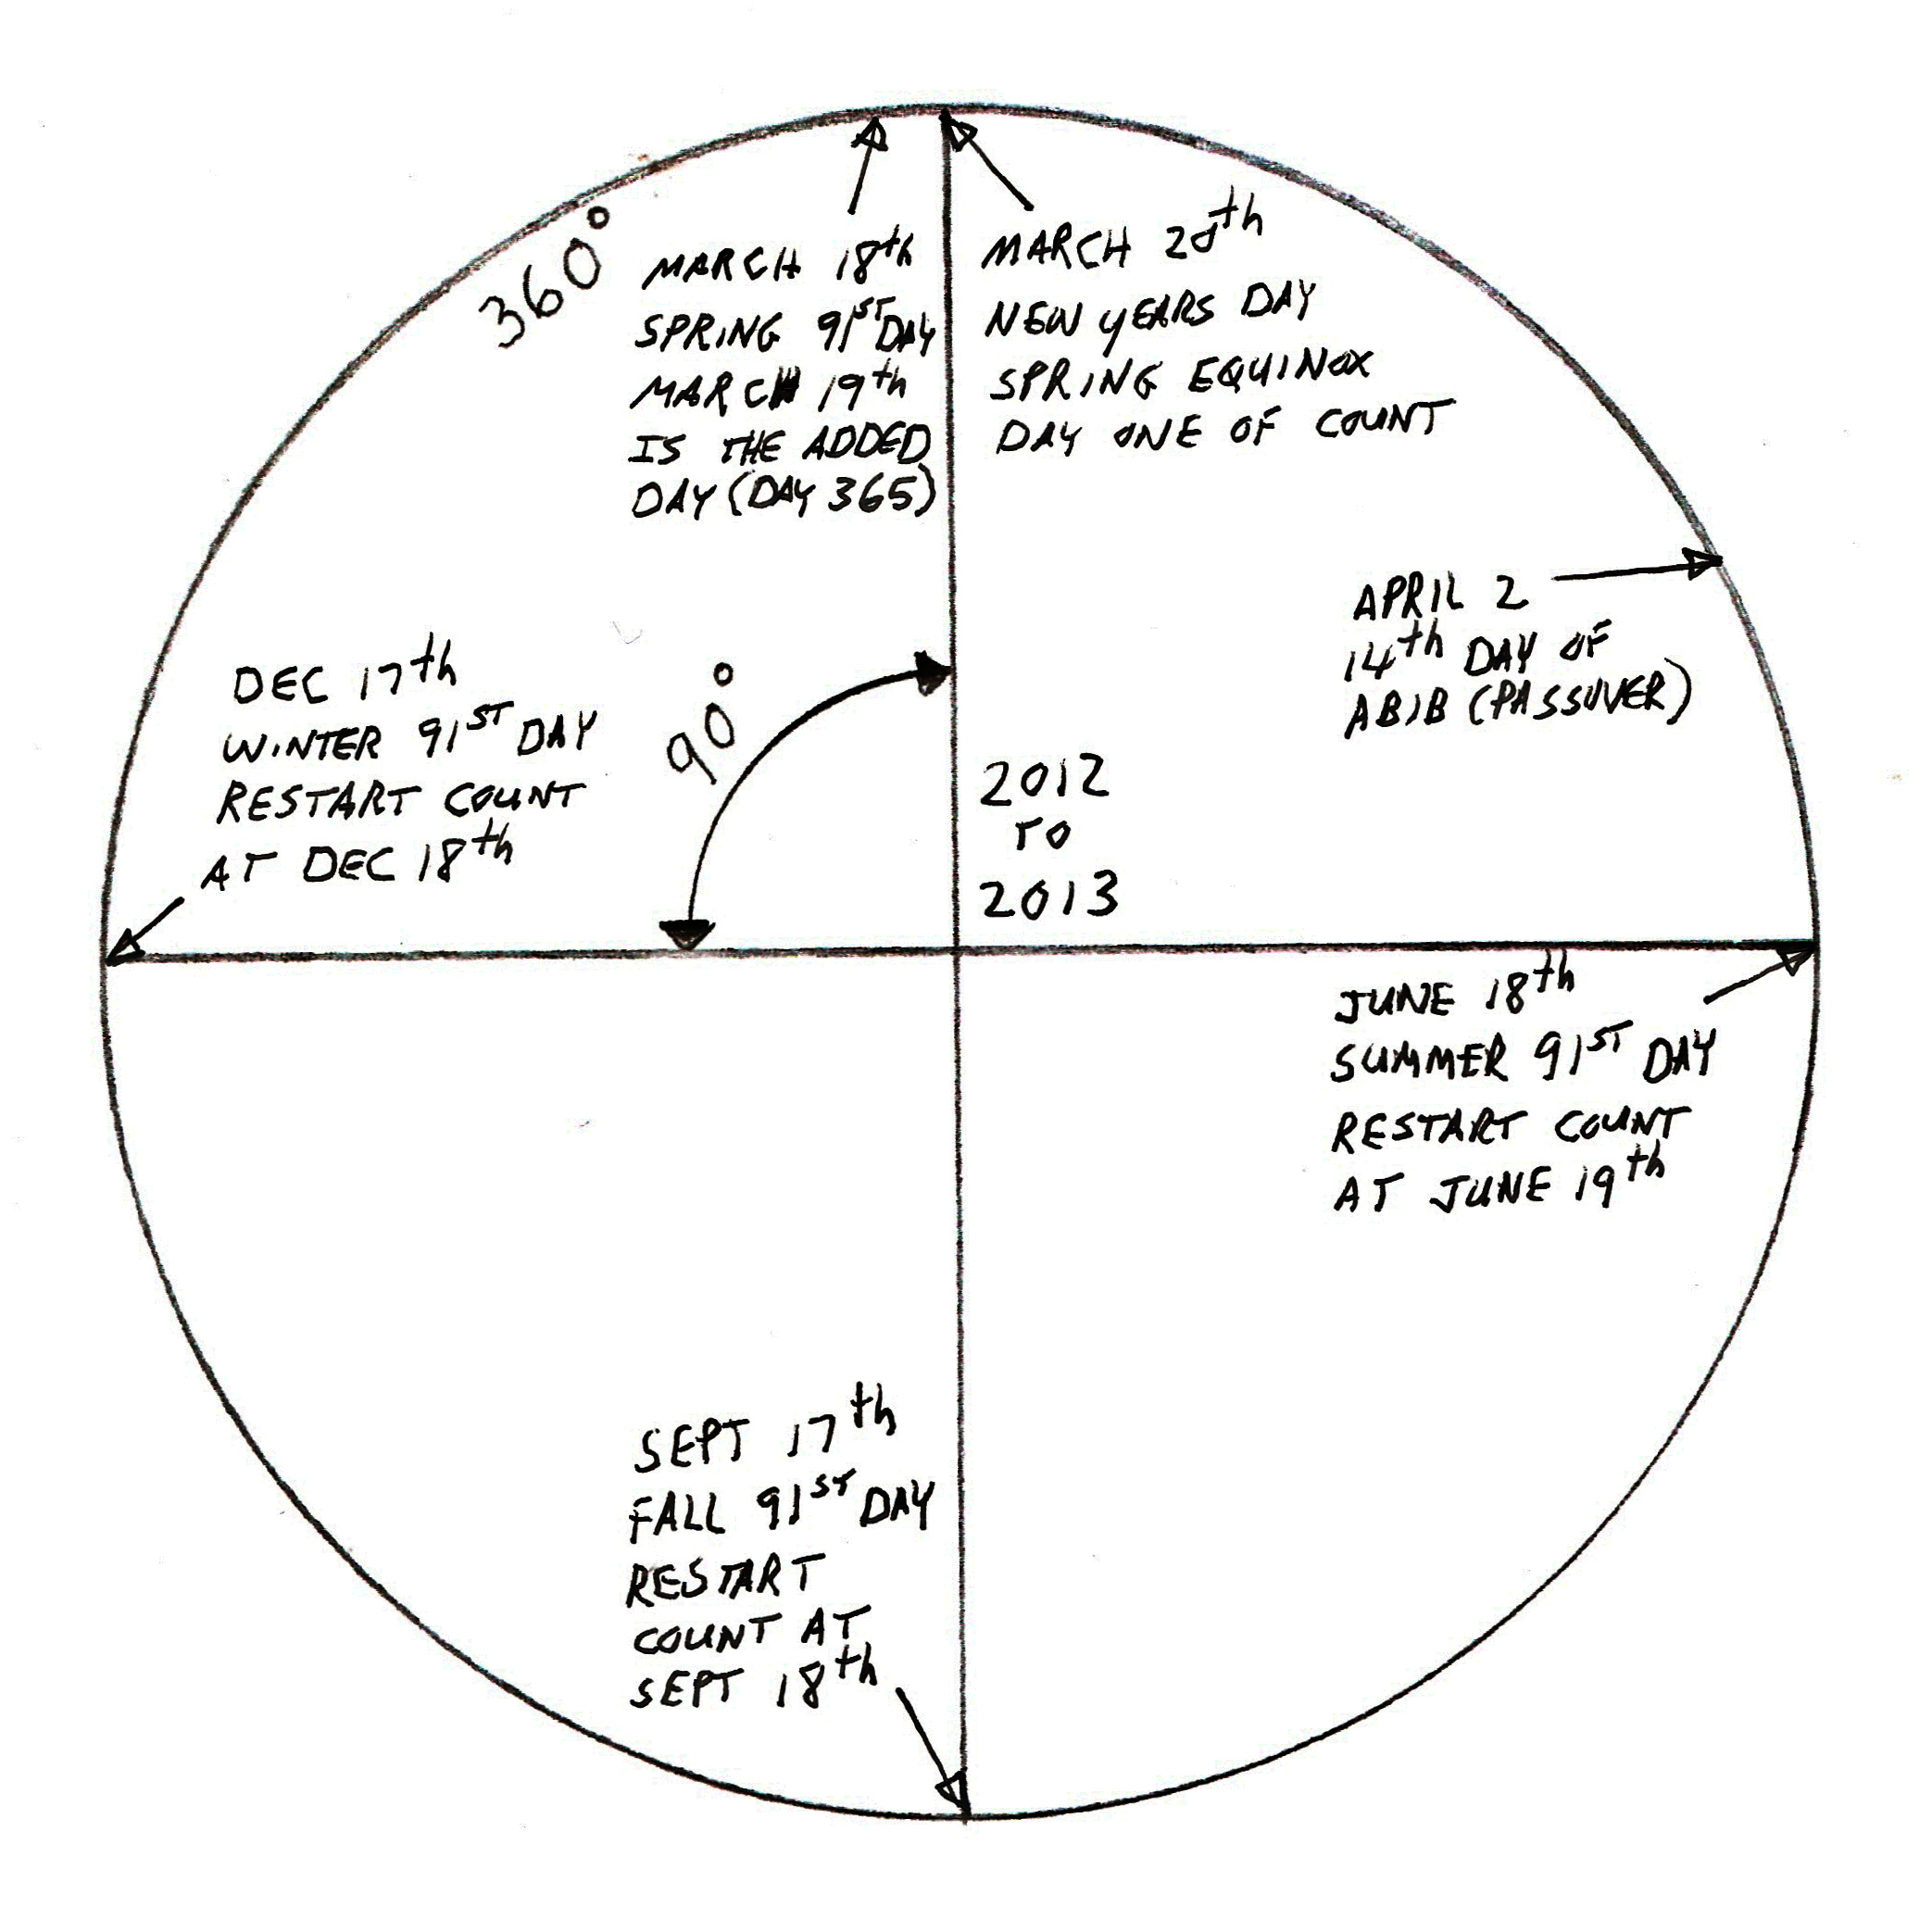 The solar calendar and 91st days for 2012 to 2013